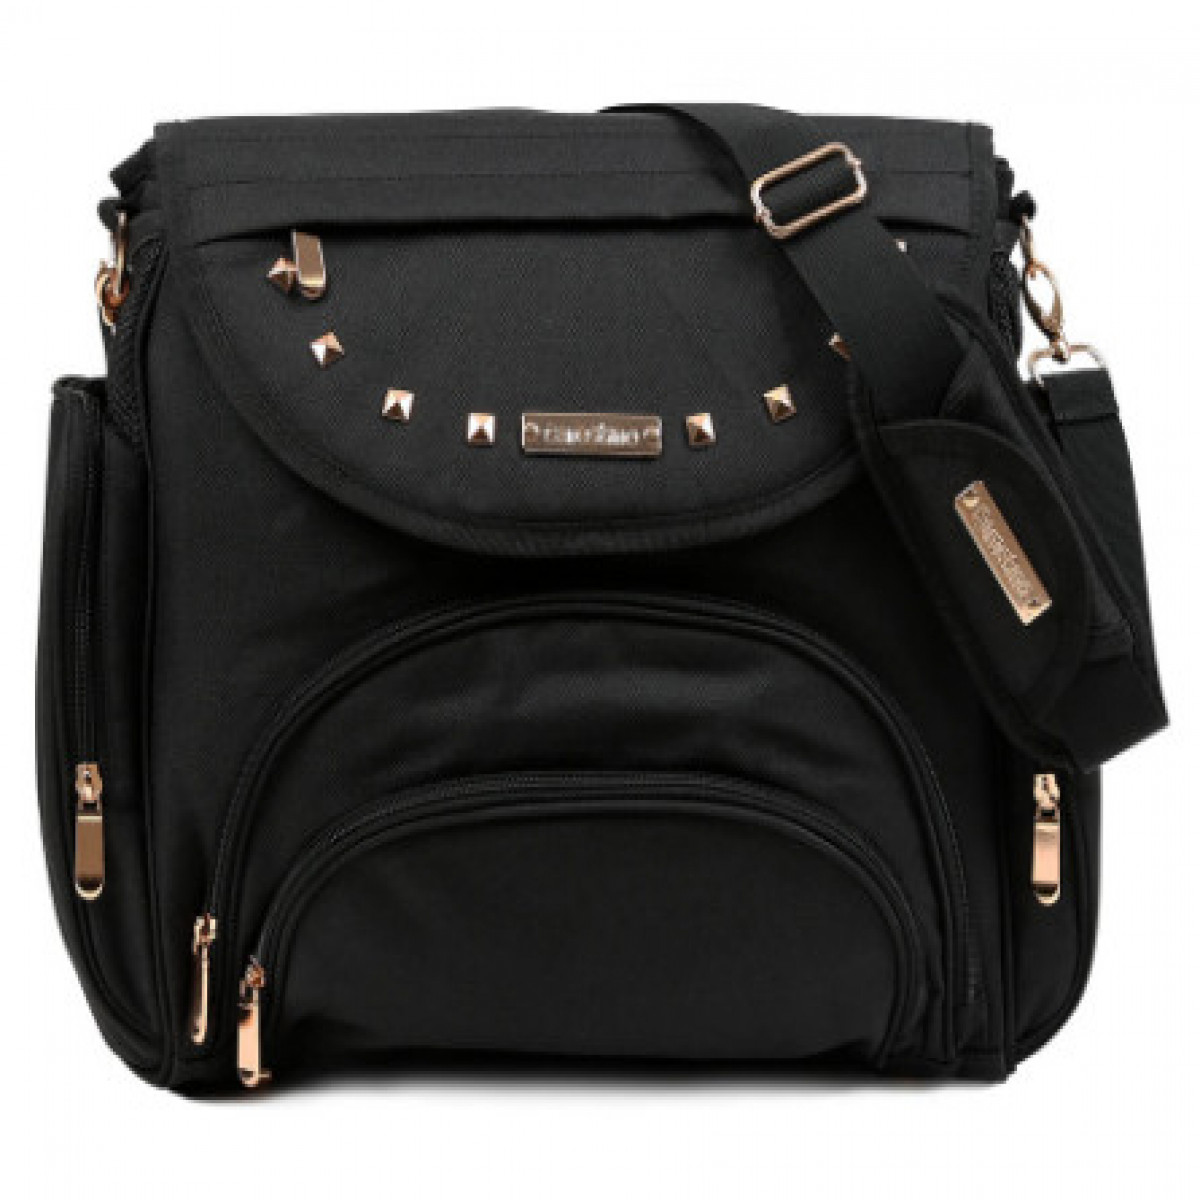 Bolso Maternal  Carestino negro